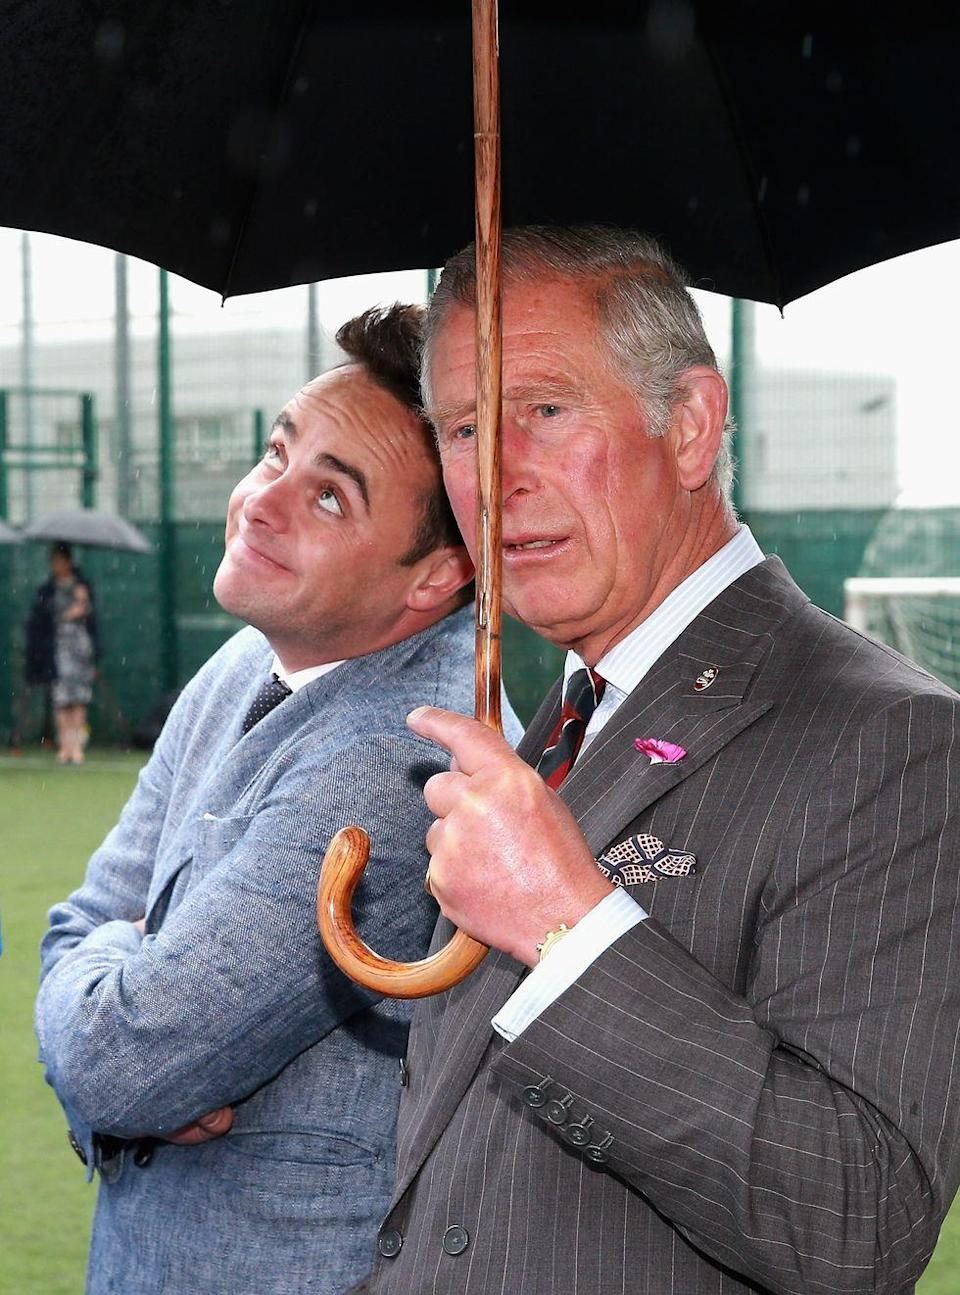 <p>TV presenter Anthony McPartlin enjoys the shelter provided by Prince Charles's umbrella.<br></p>